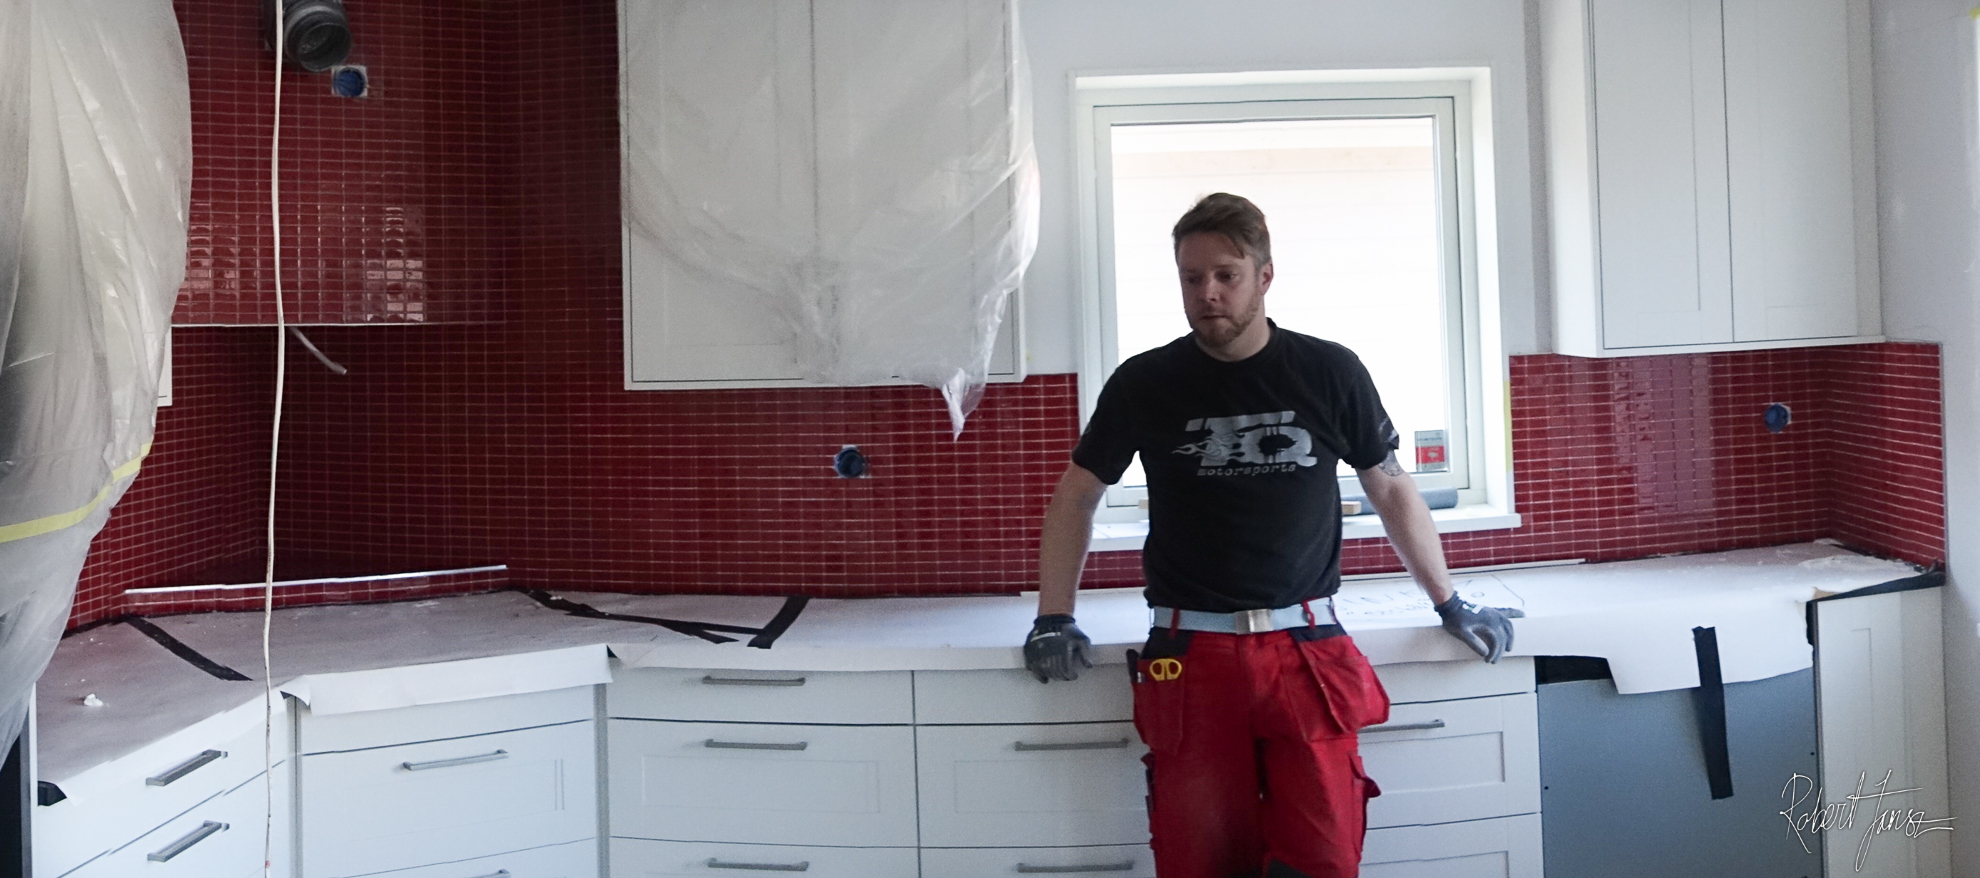 Finished kitchen with red mosaic tiles